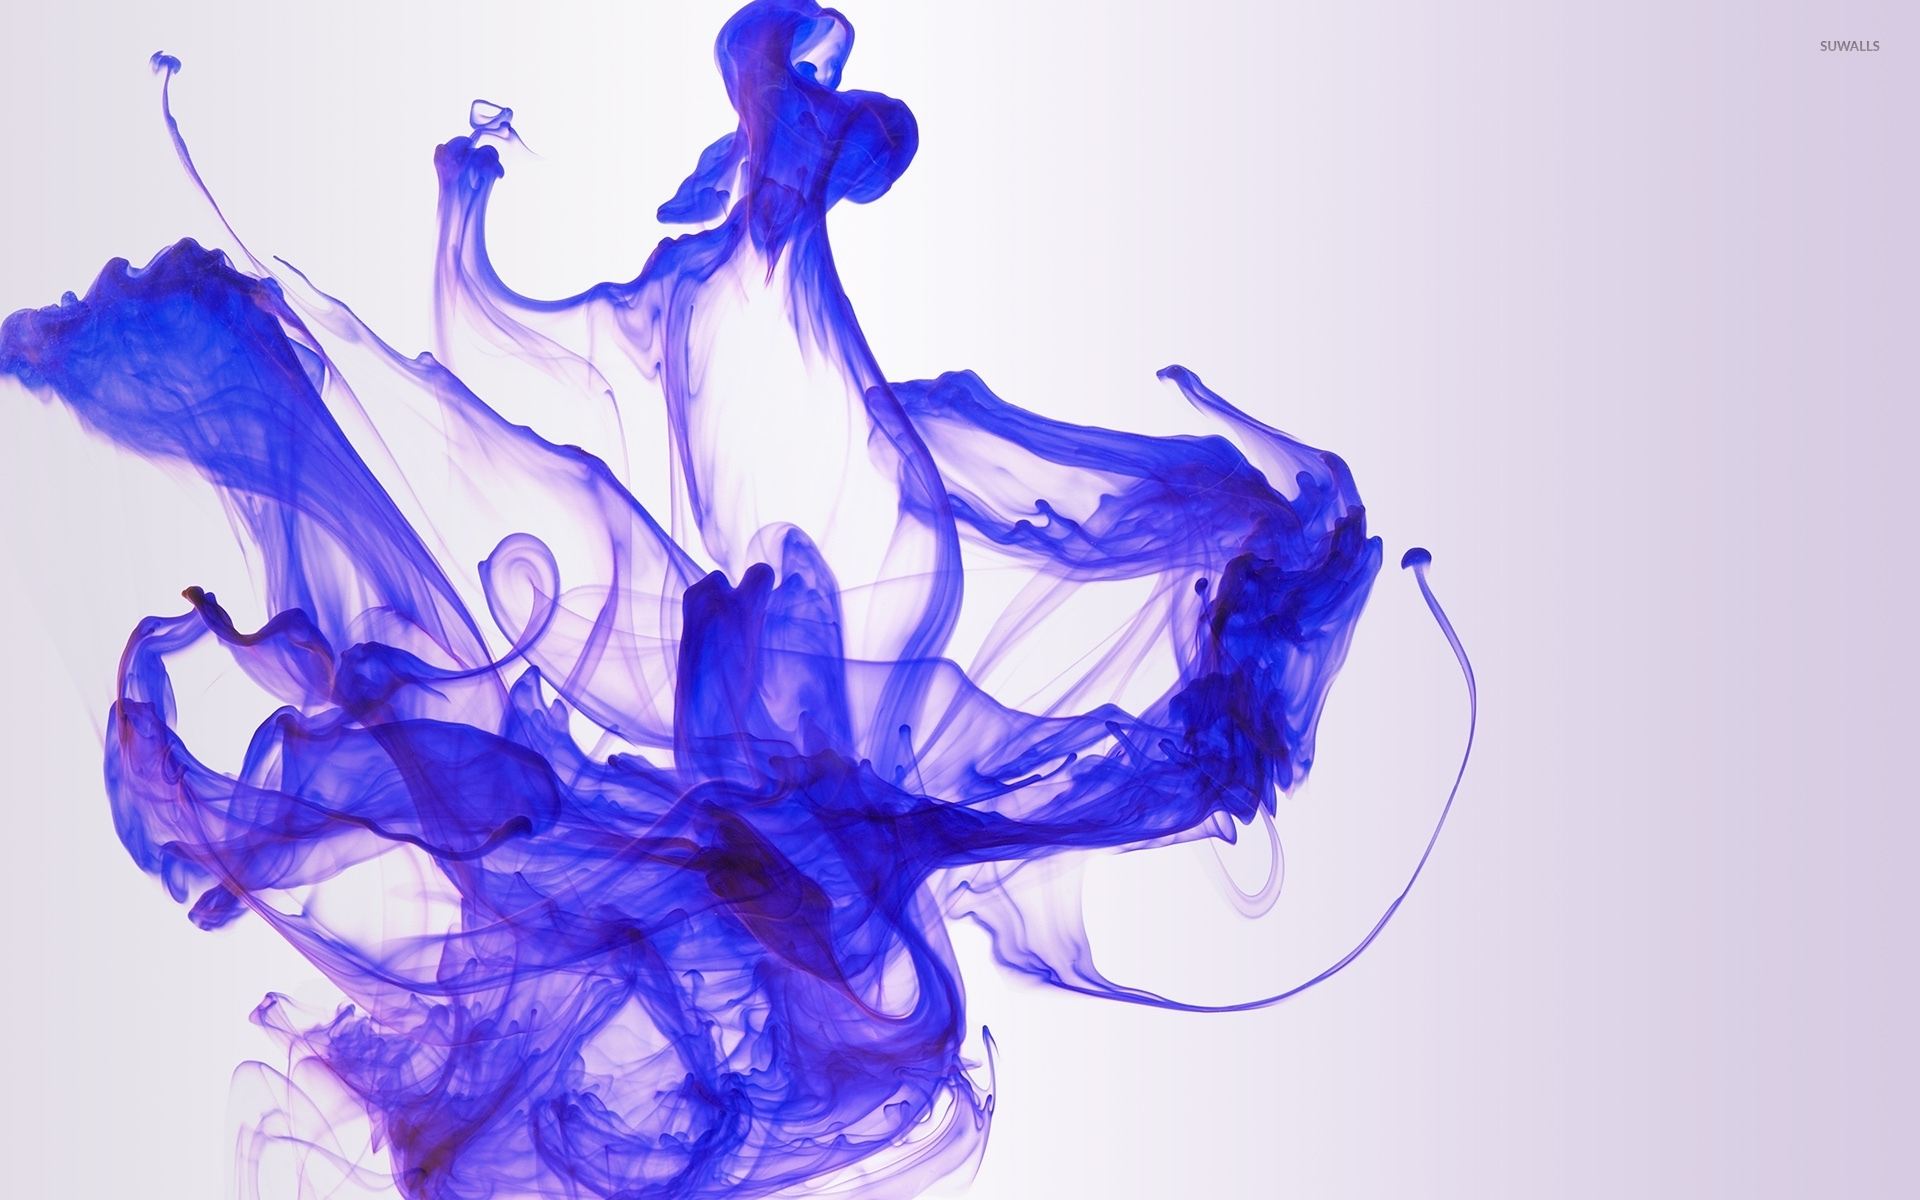 Violet Smoke Art Wallpapers: Purple Smoke Art Wallpaper